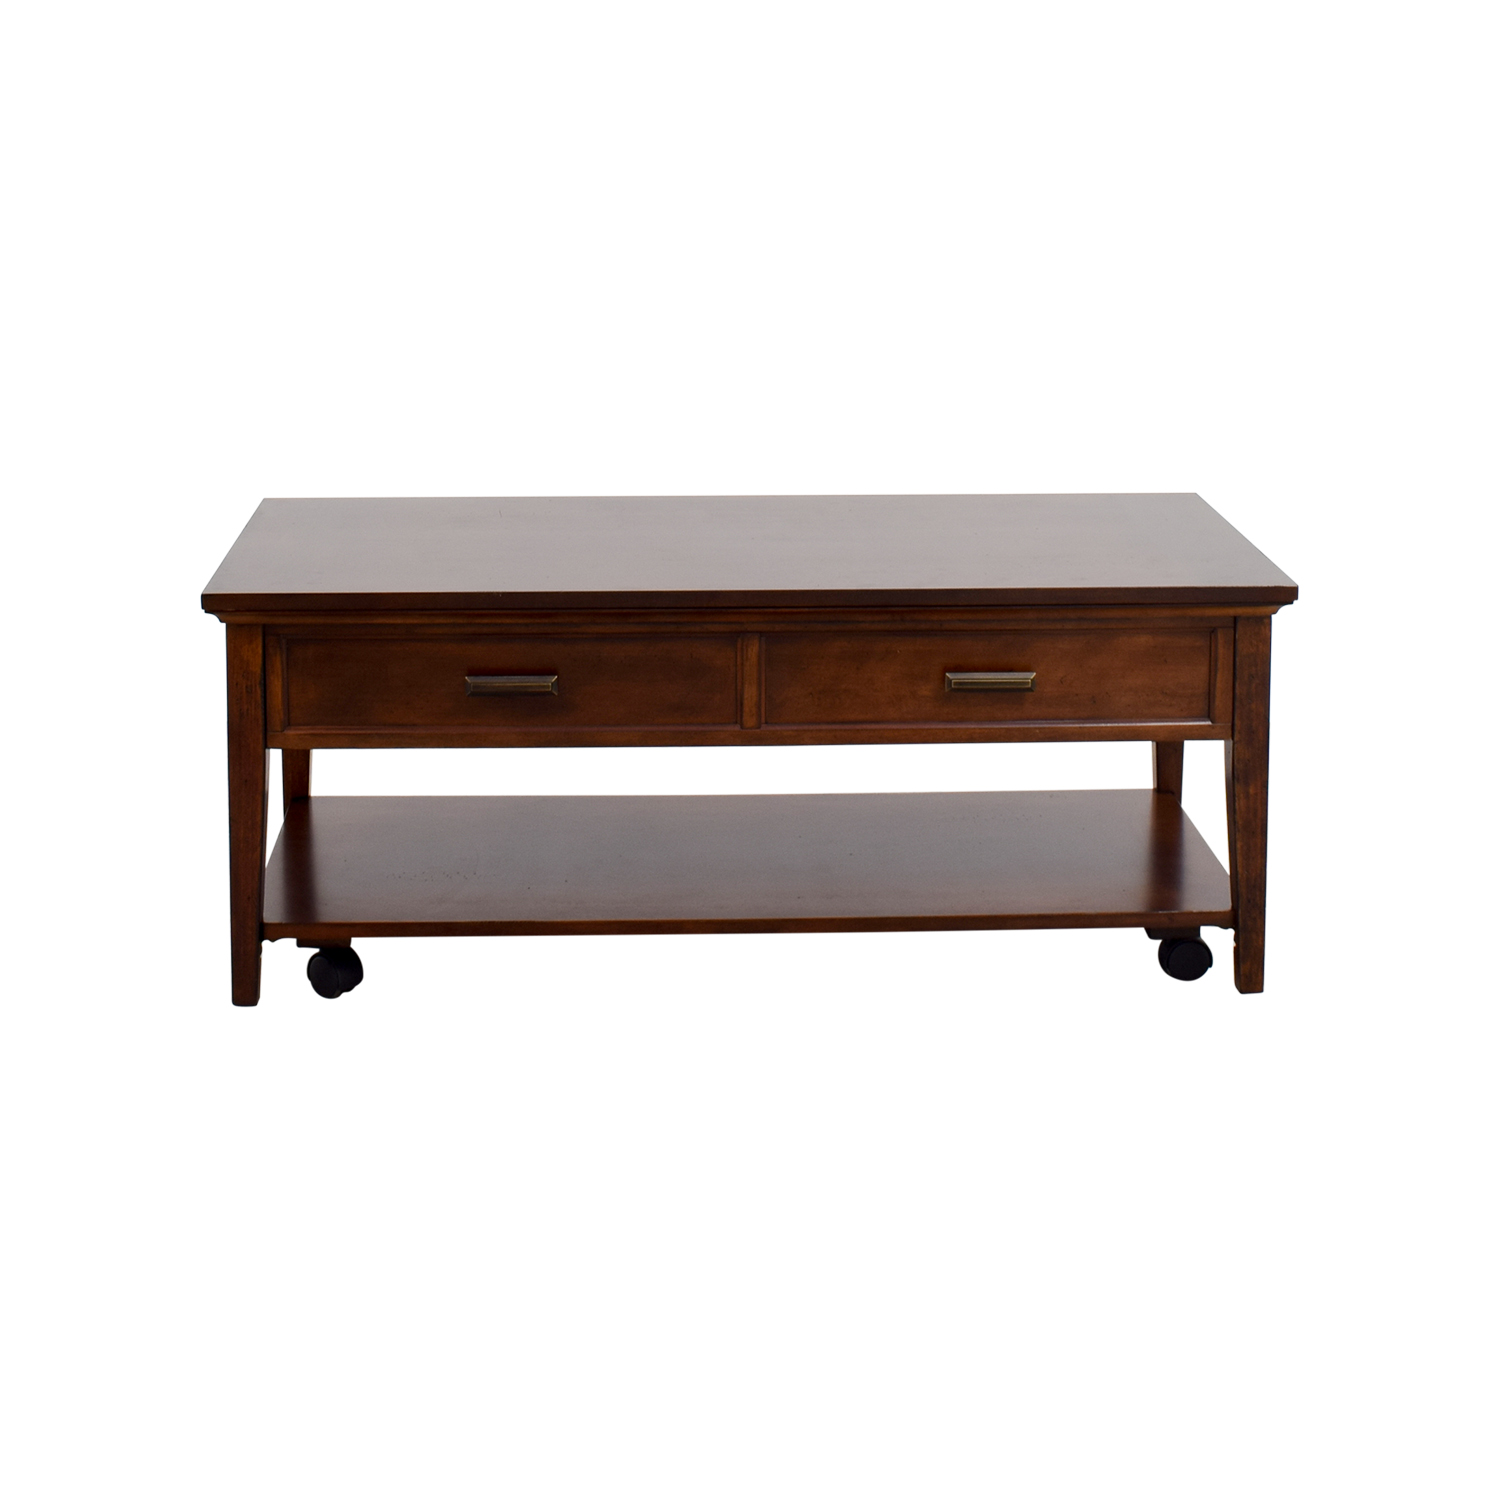 buy Raymour & Flanigan Harbour Bay Lift-top Coffee Table Raymour & Flanigan